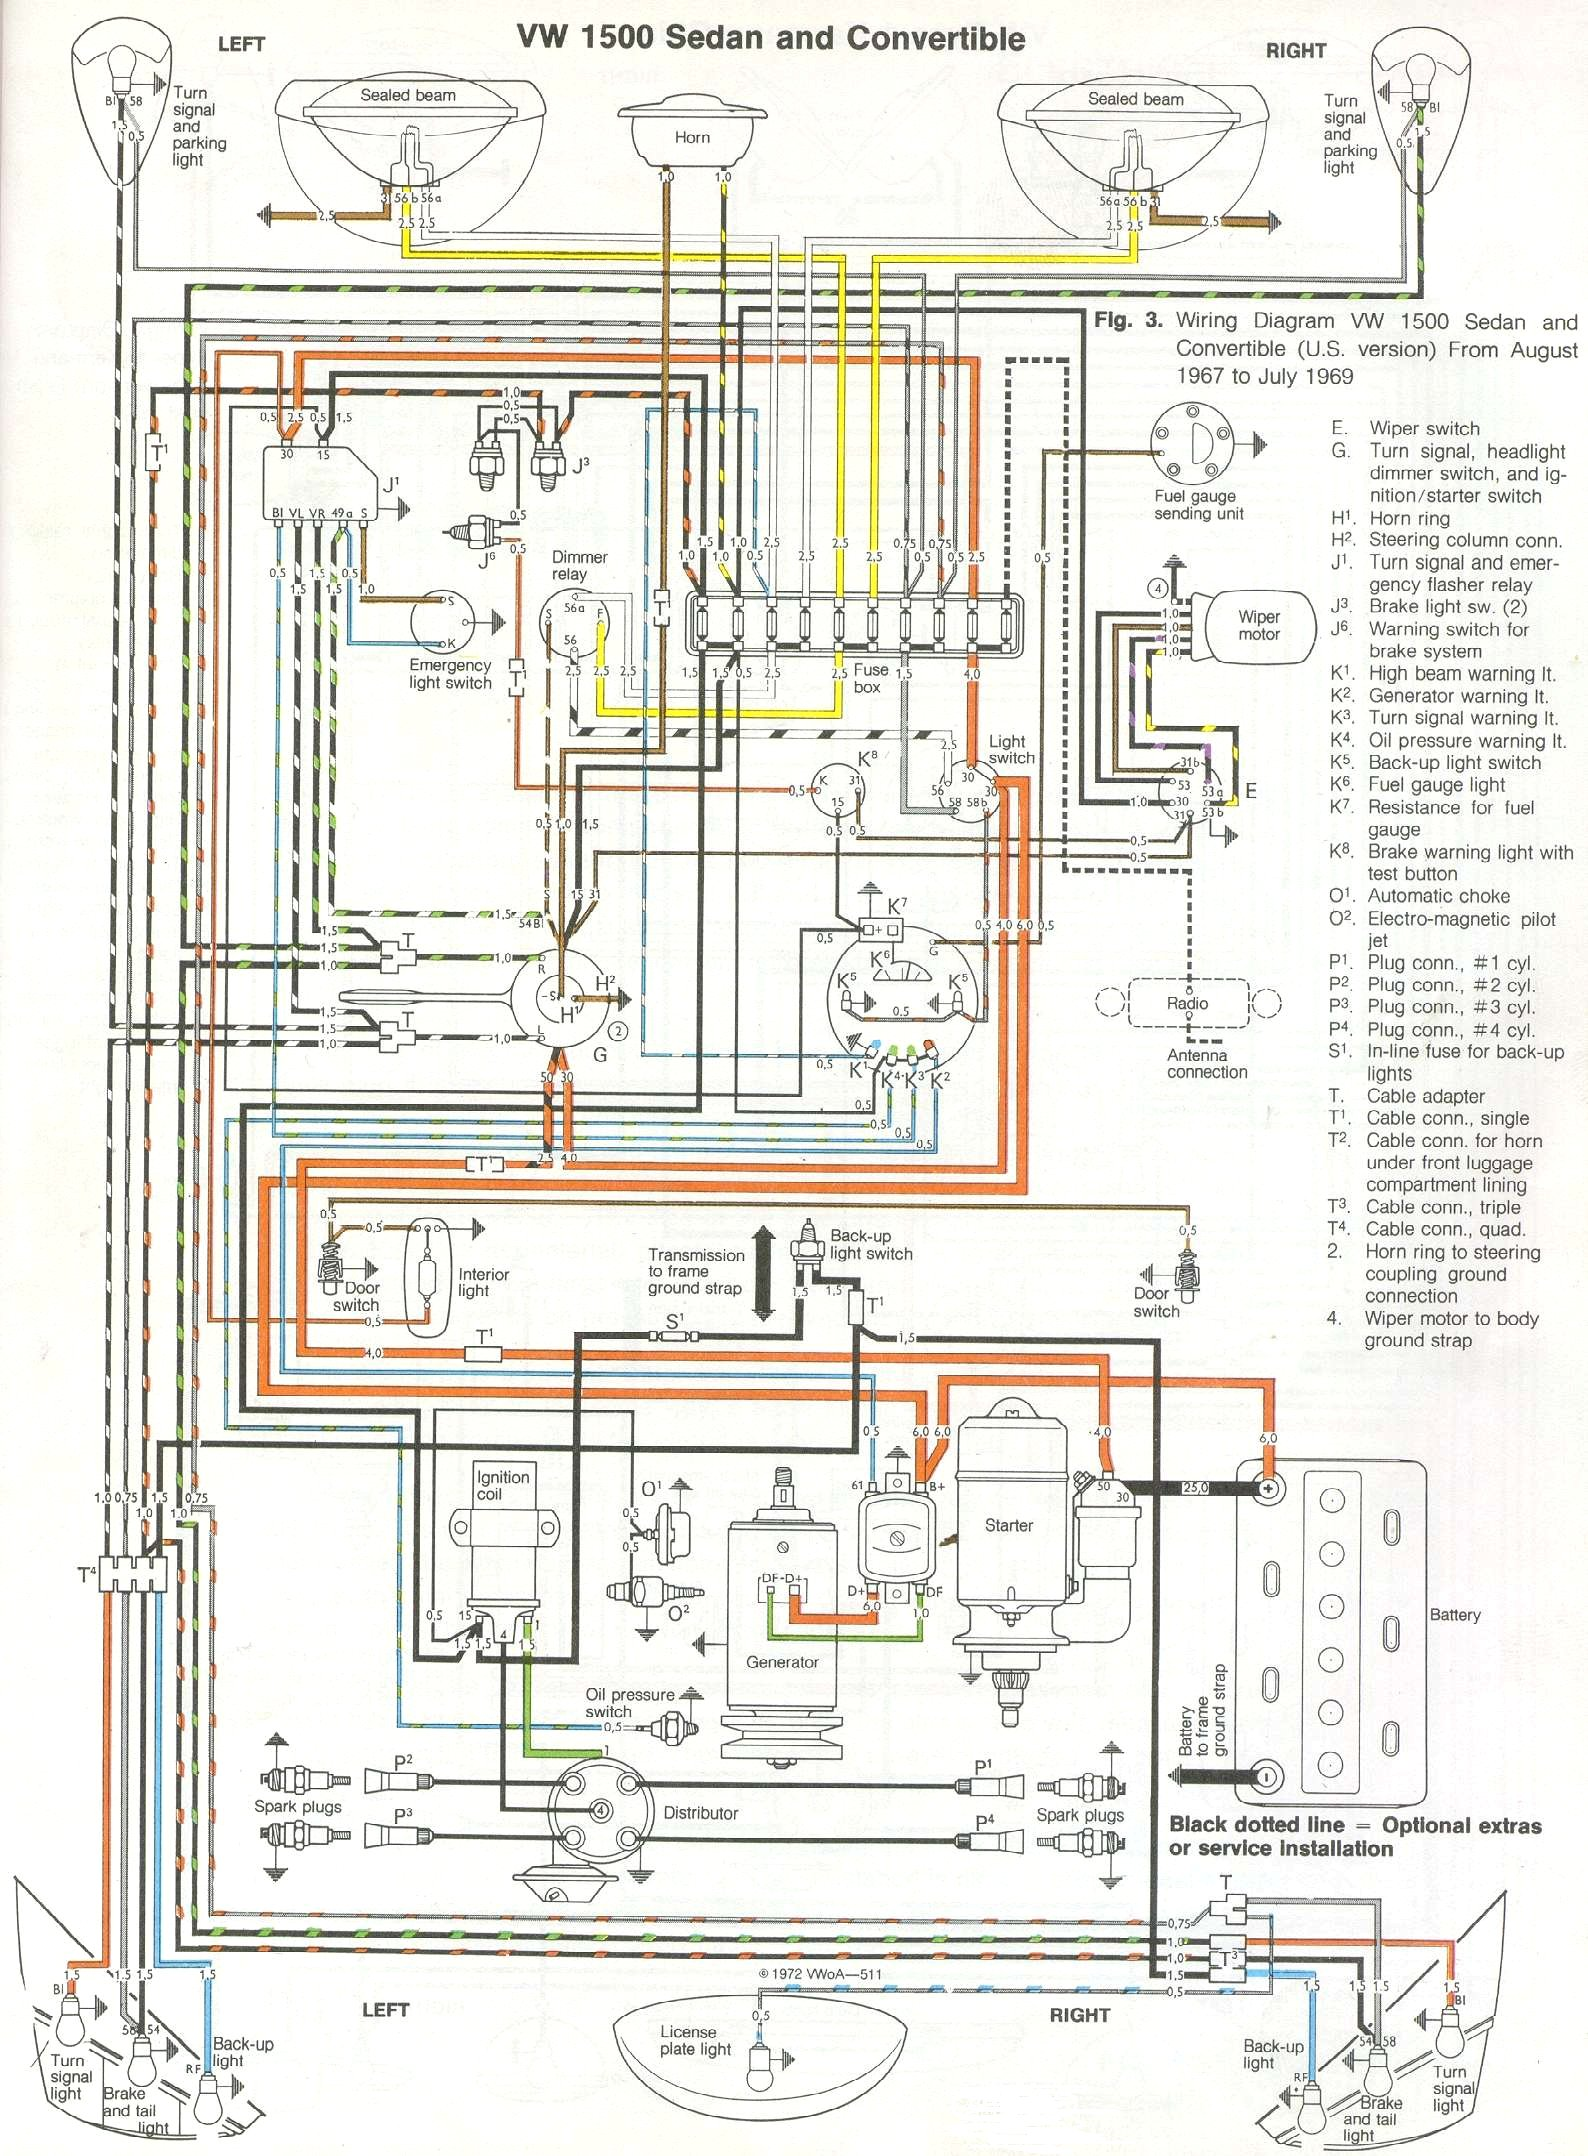 68 Chevy Malibu Wiring Diagram Library 2012 Fuse Box 1970 Mustang Convertible Auto Electrical Chevrolet Fuel